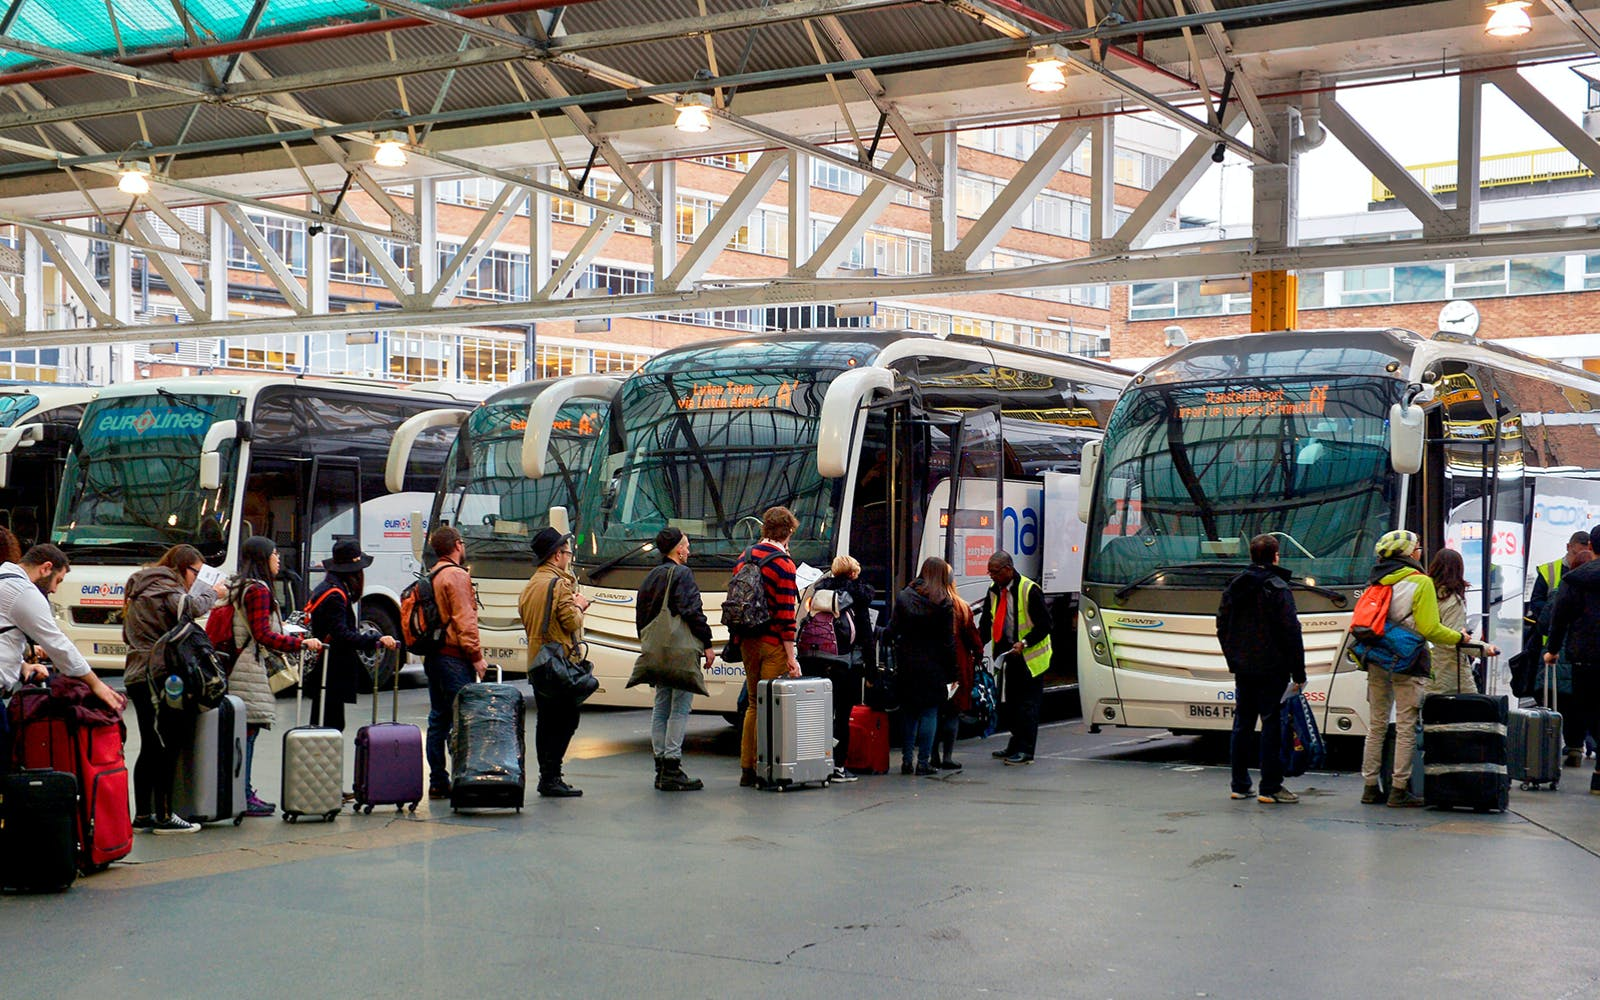 Stansted Airport to Victoria Station Bus Transfers